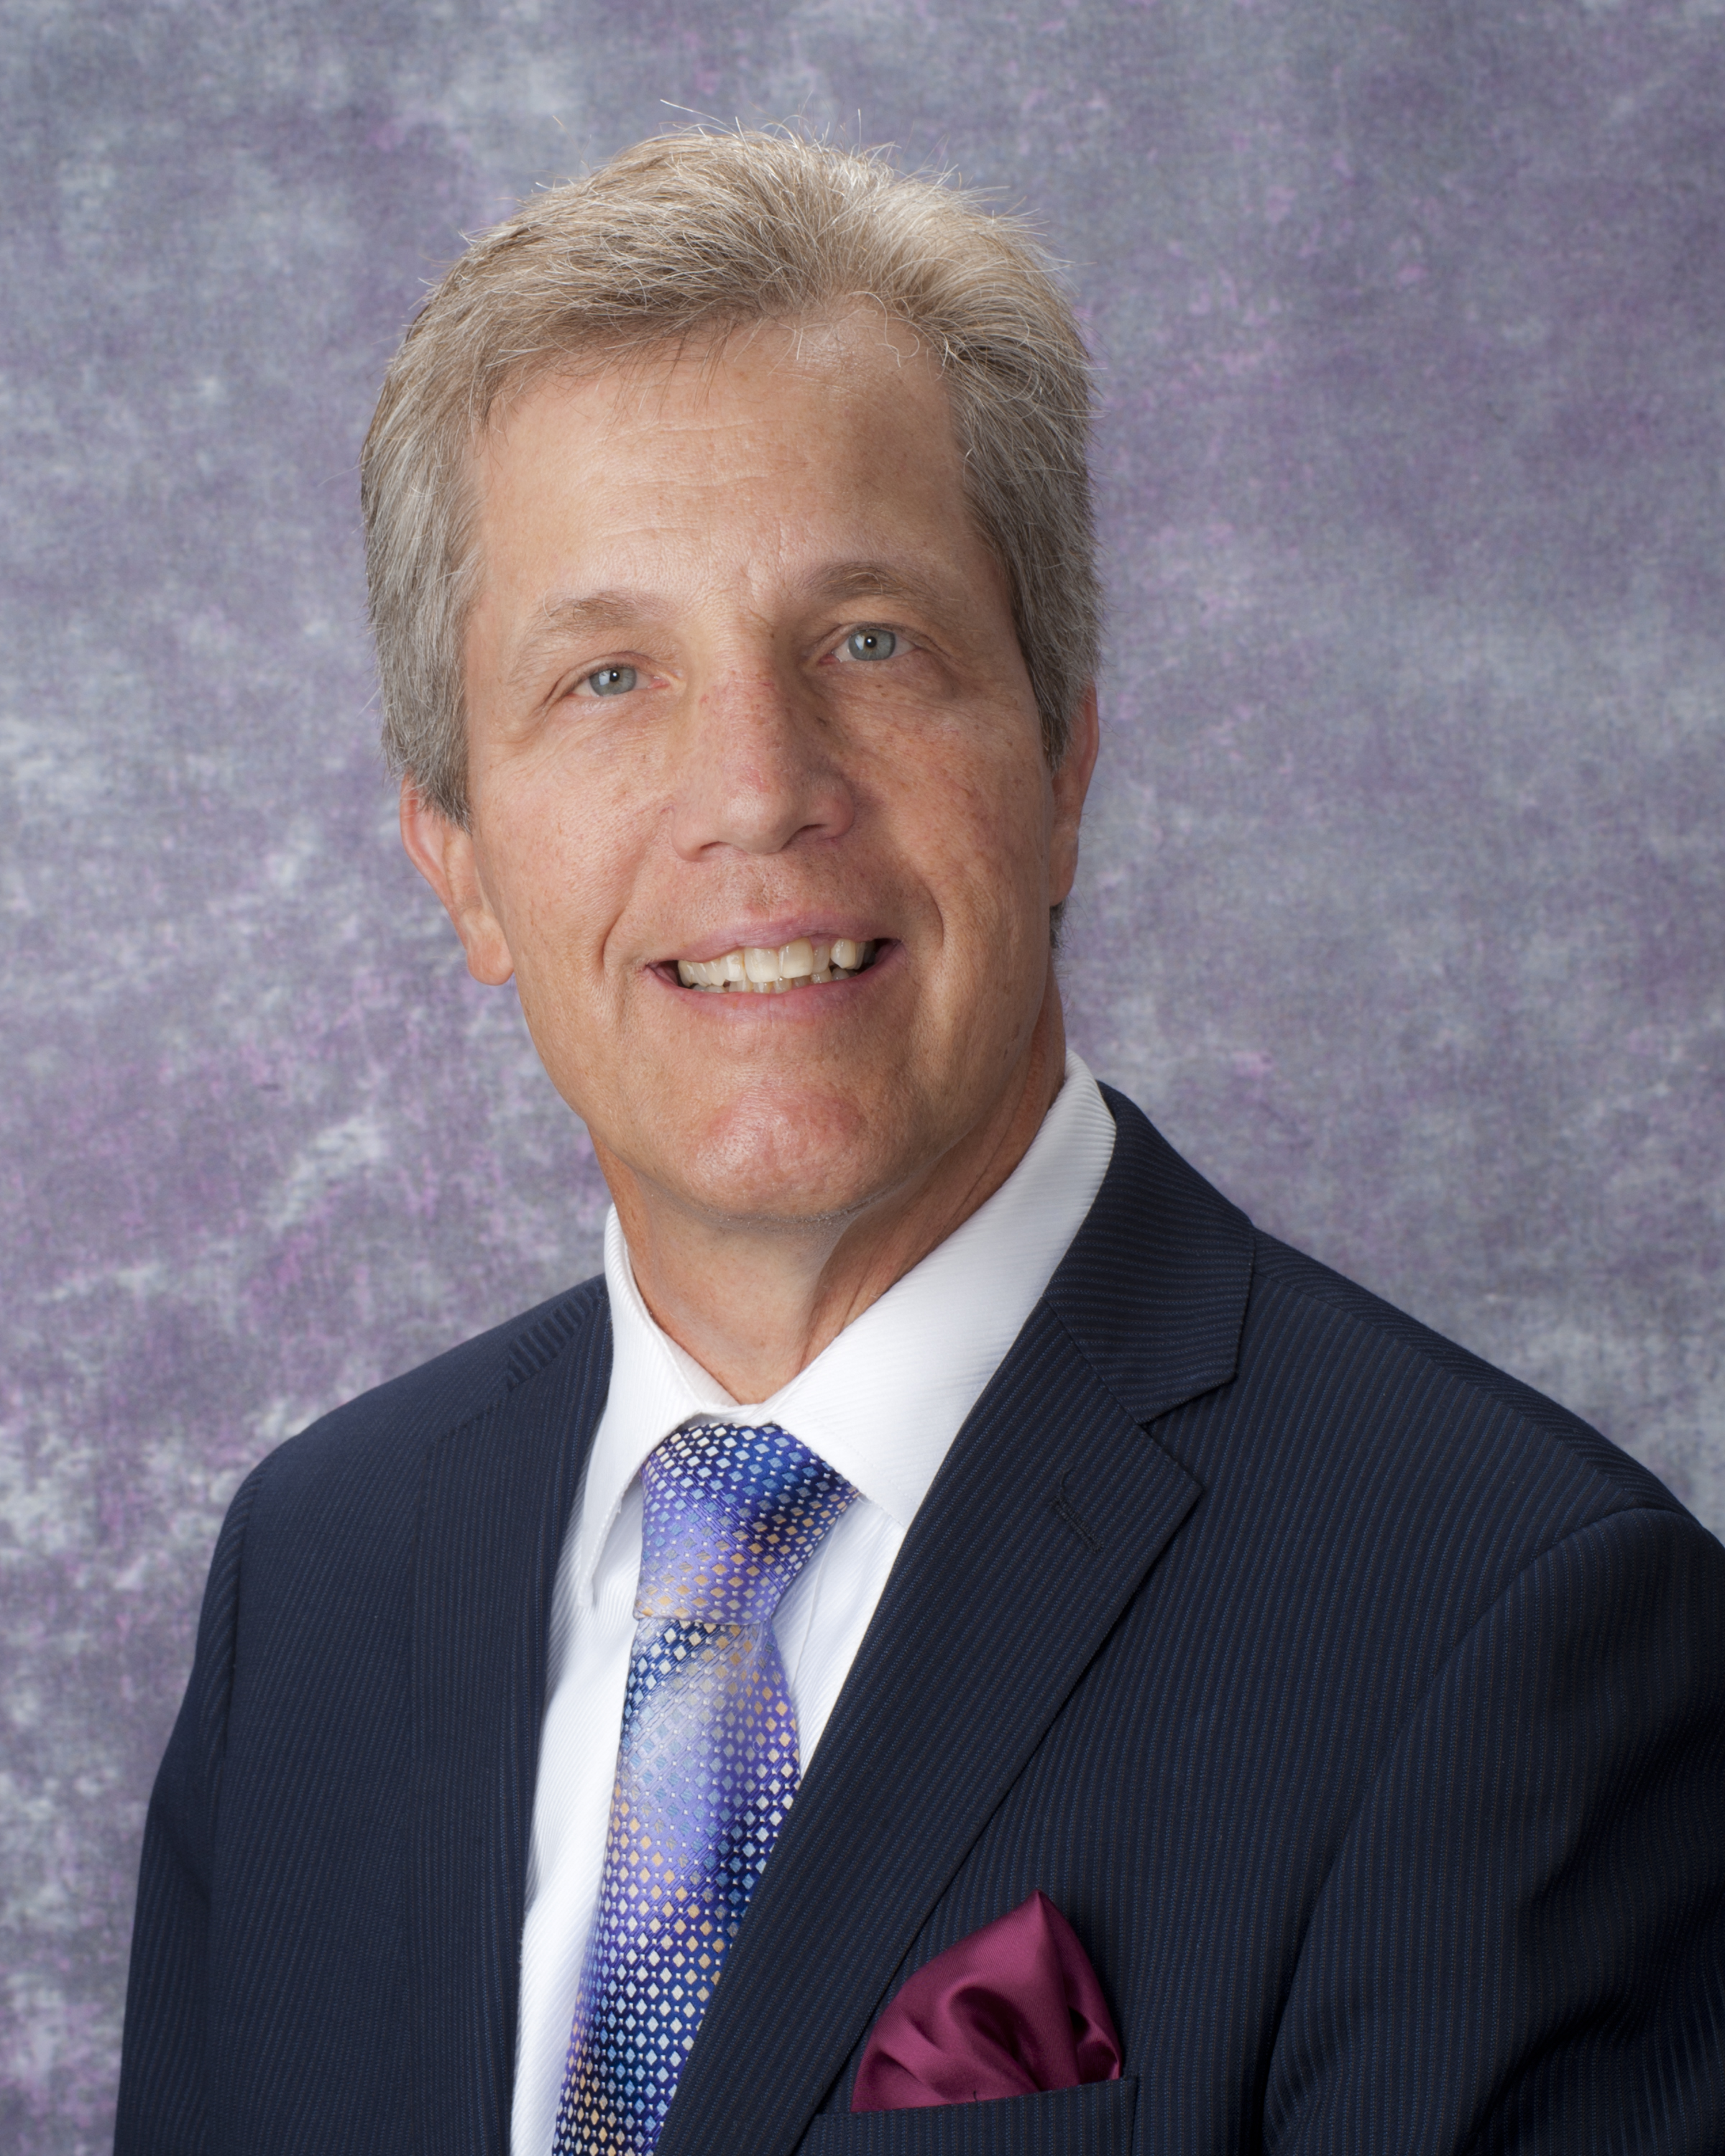 Dr. Dennis Hurwitz - Plastic Surgeon